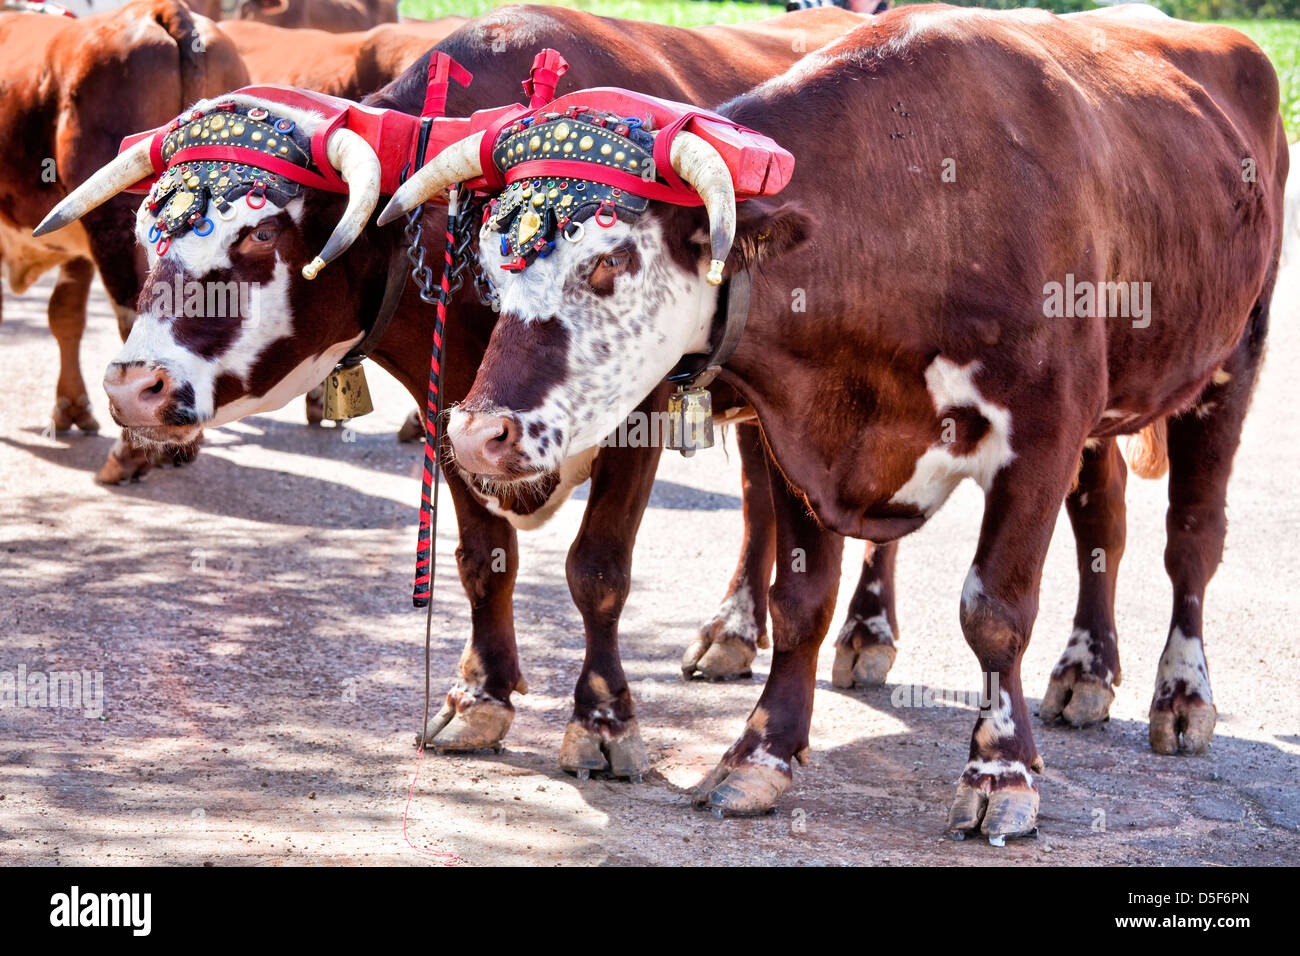 Team of oxen with a traditional decorated yoke. - Stock Image